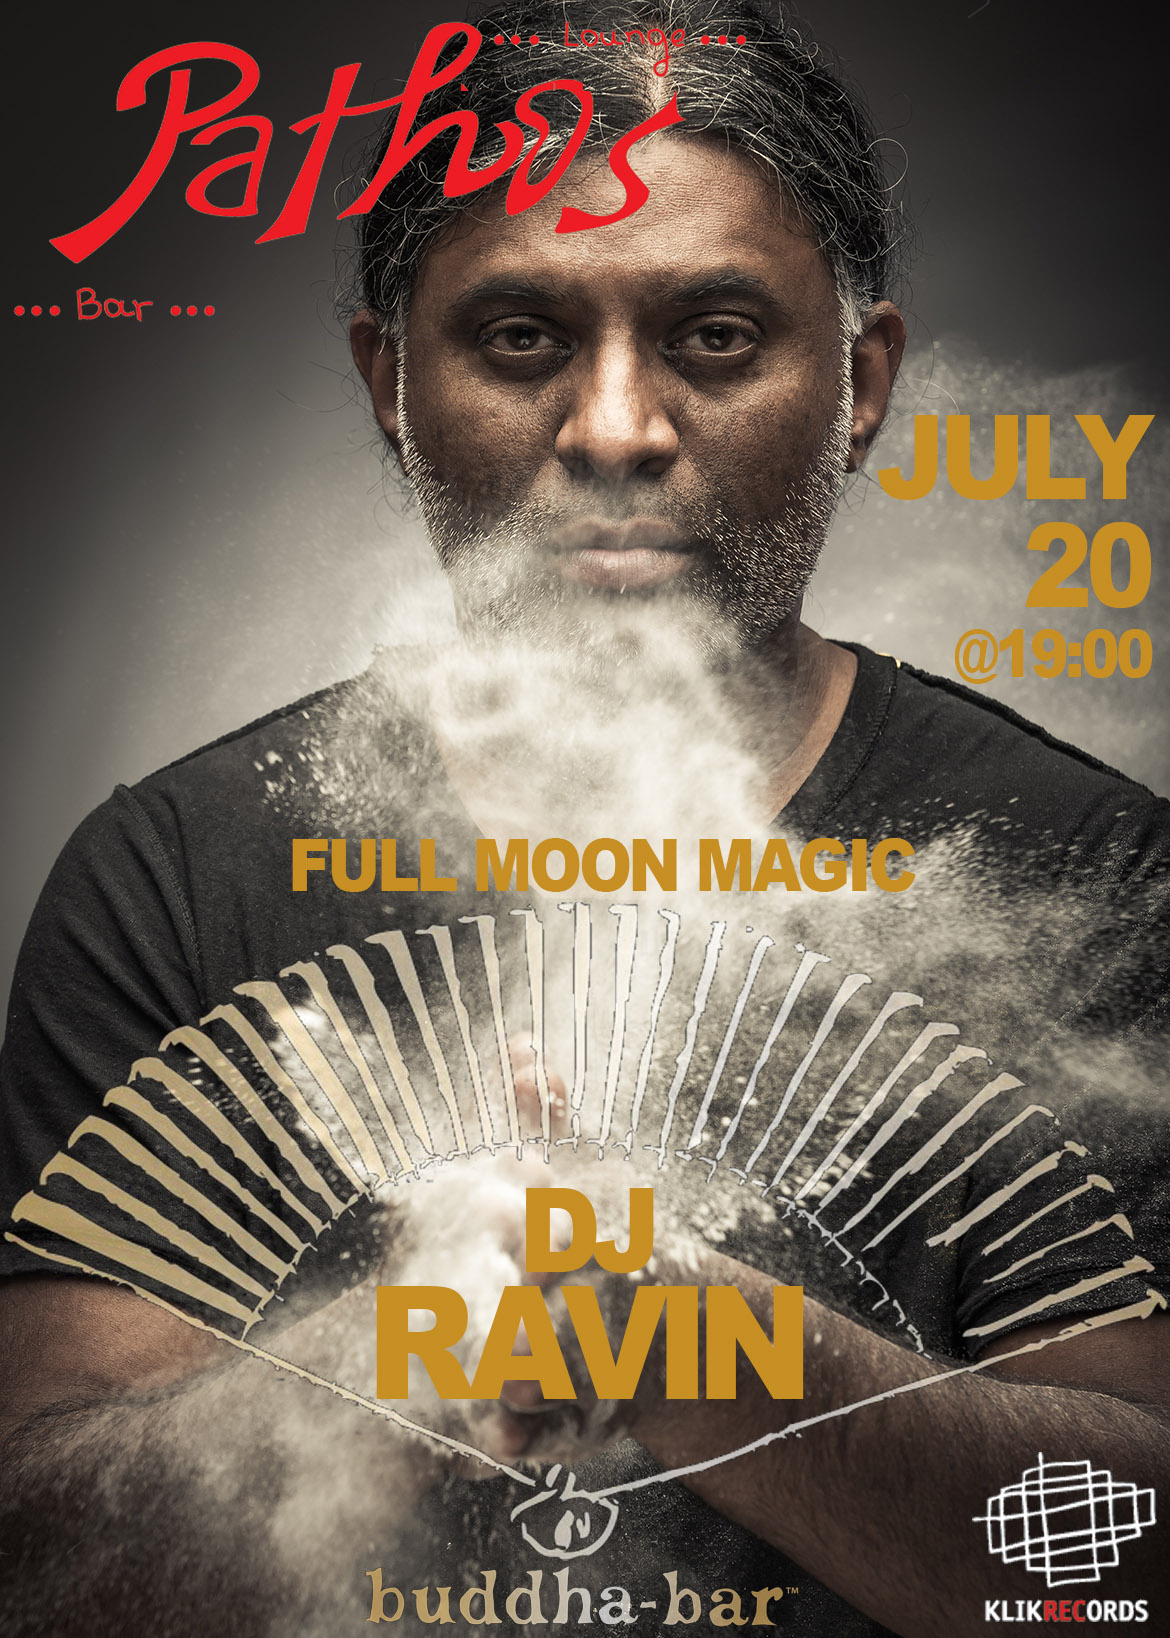 Full Moon Party with DJ RAVIN - BUDDHA BAR